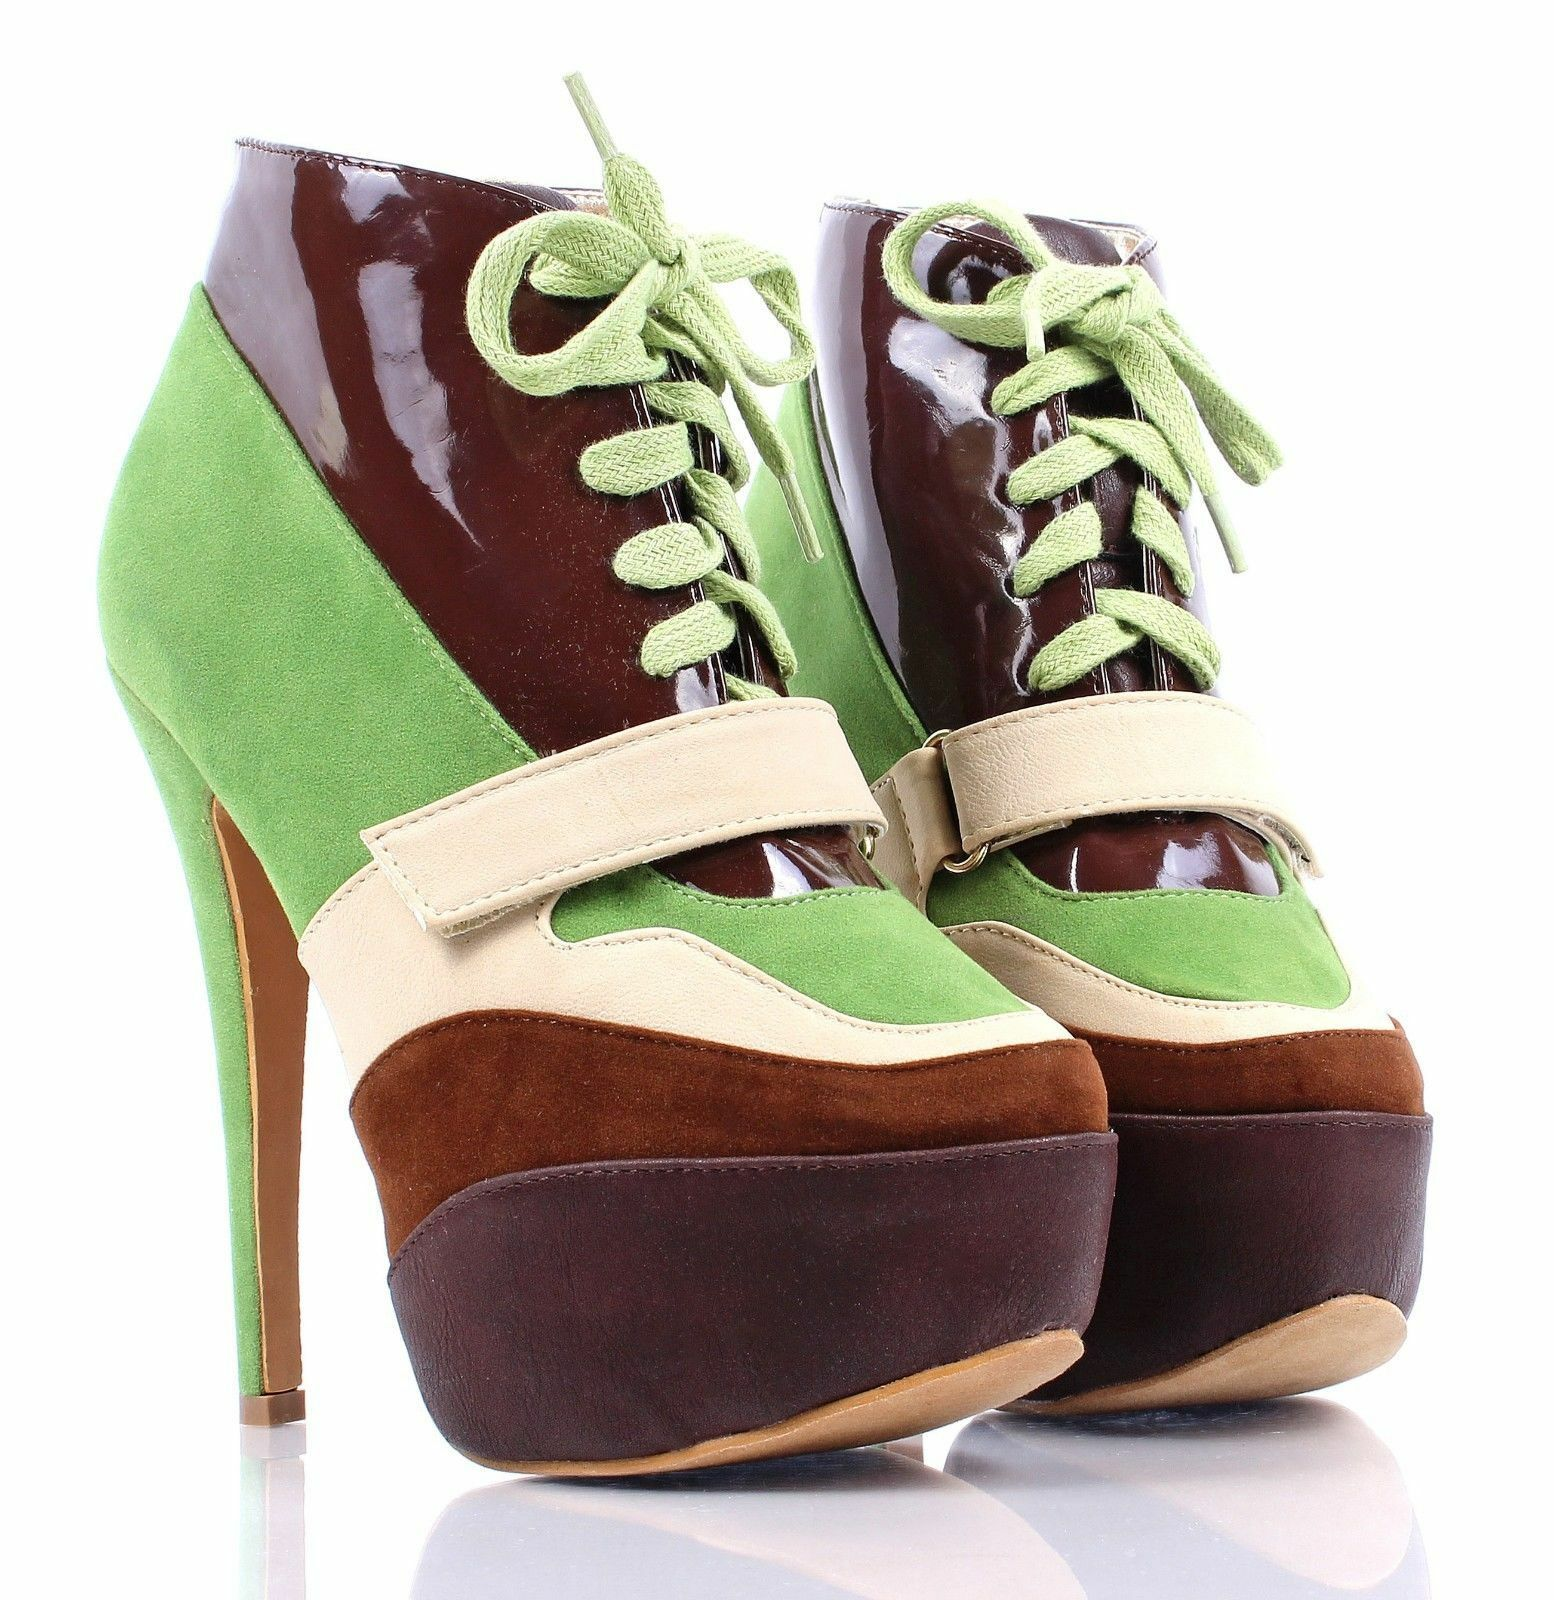 Green Multi Lace Up Pretty Booties Womens Heels Pumps Ankle Boots Size 6.5